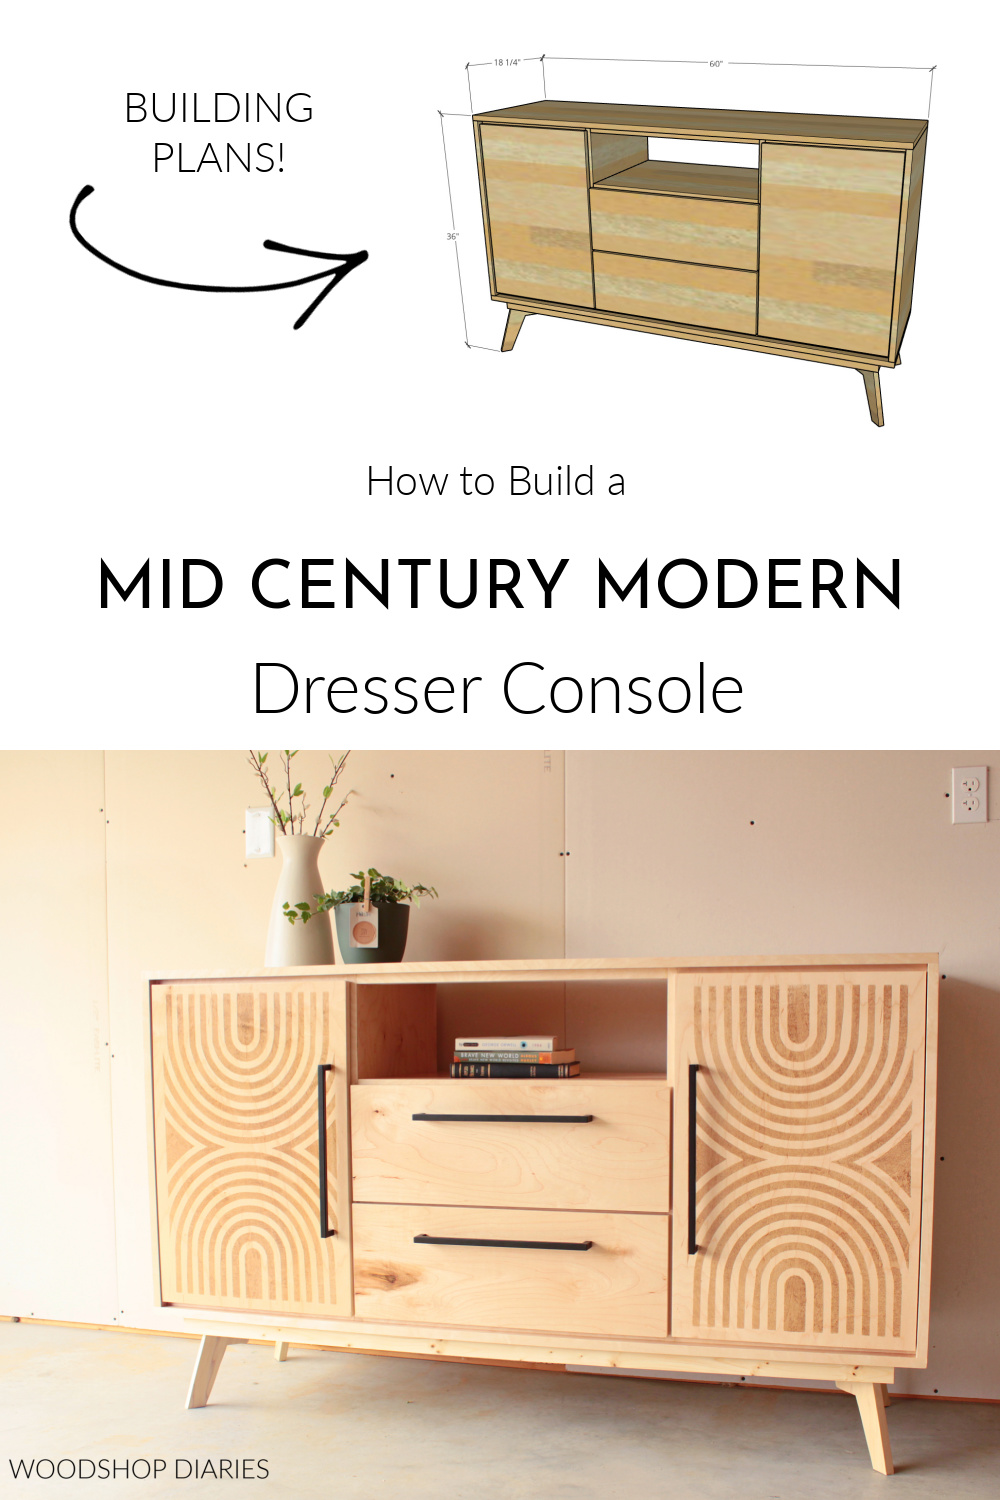 """Pinterest diagram showing overall dimensional diagram of dresser console at top and finished dresser at bottom with text """"how to build a mid century modern Dresser console"""""""